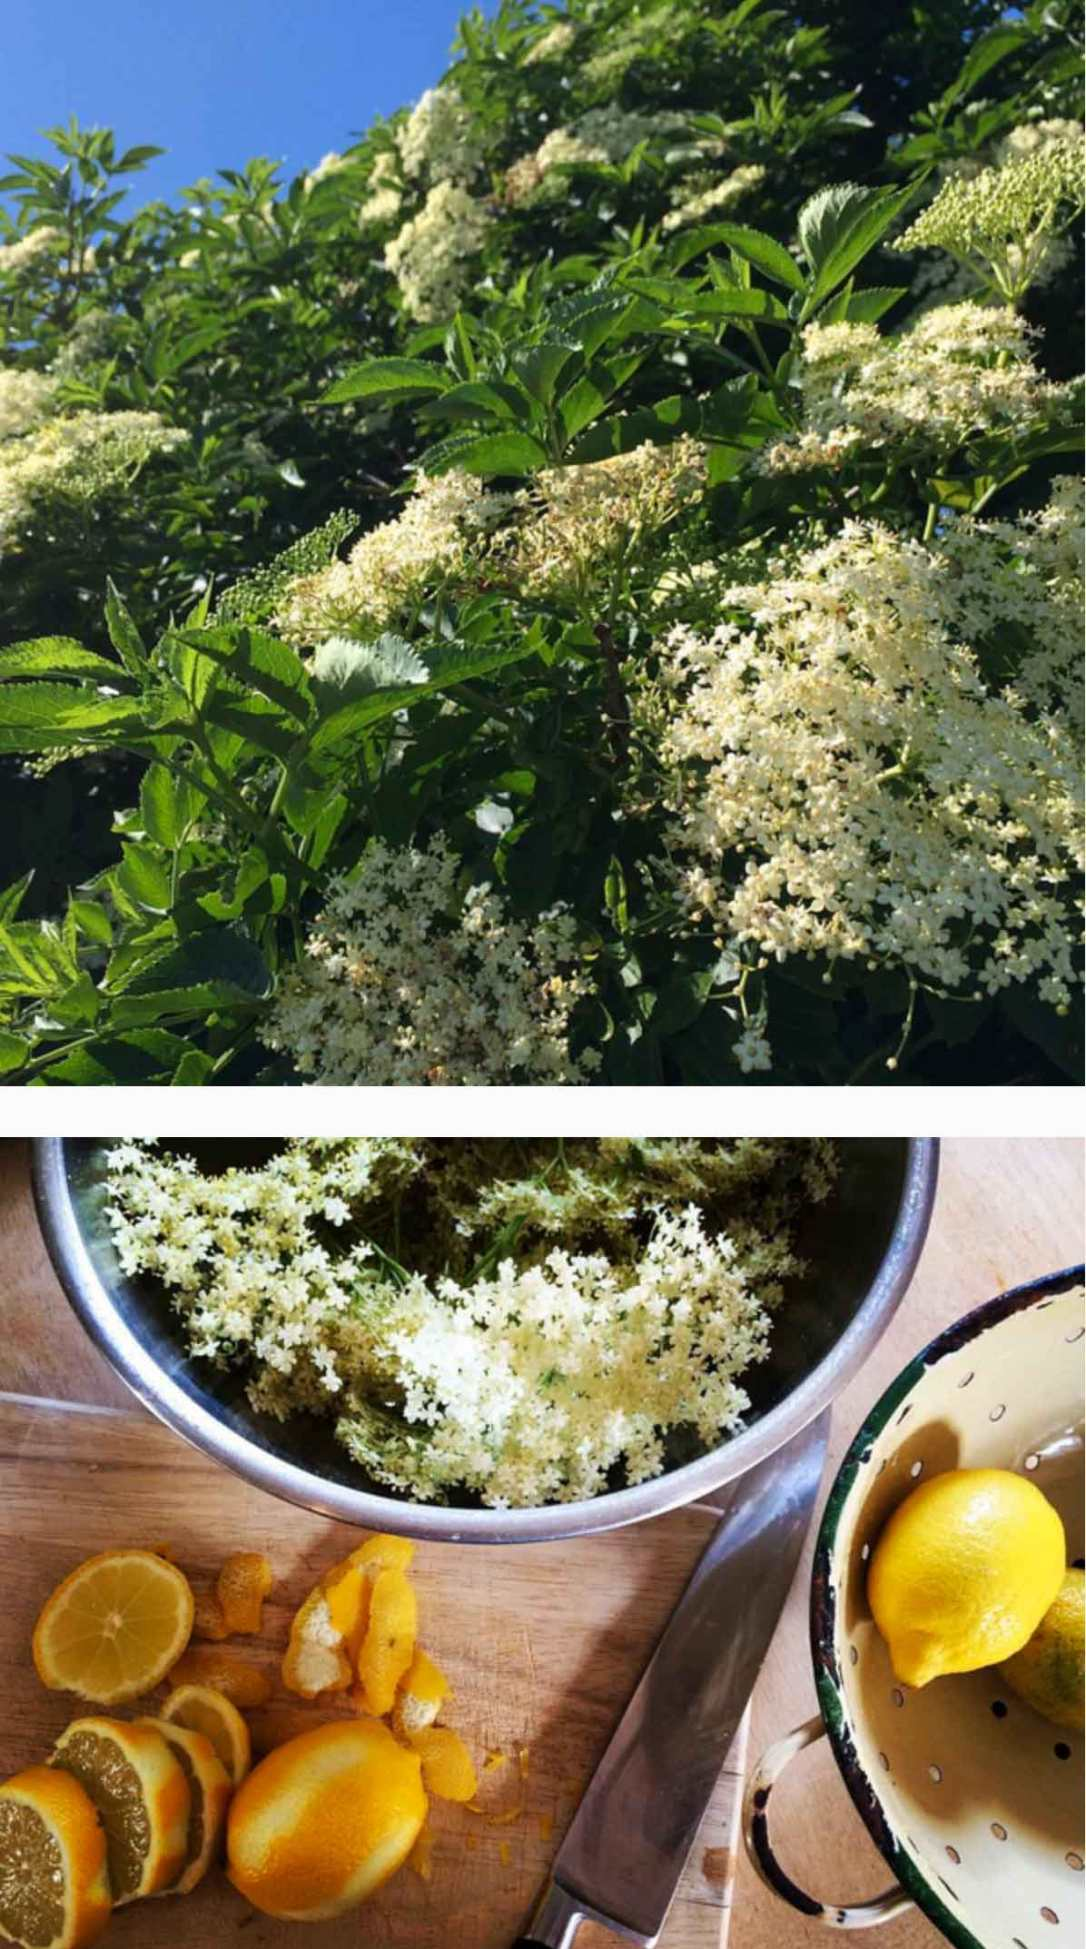 elderflowers in bloom and lemons ready to make elderflower cordial at barefoot glamping Cornwall